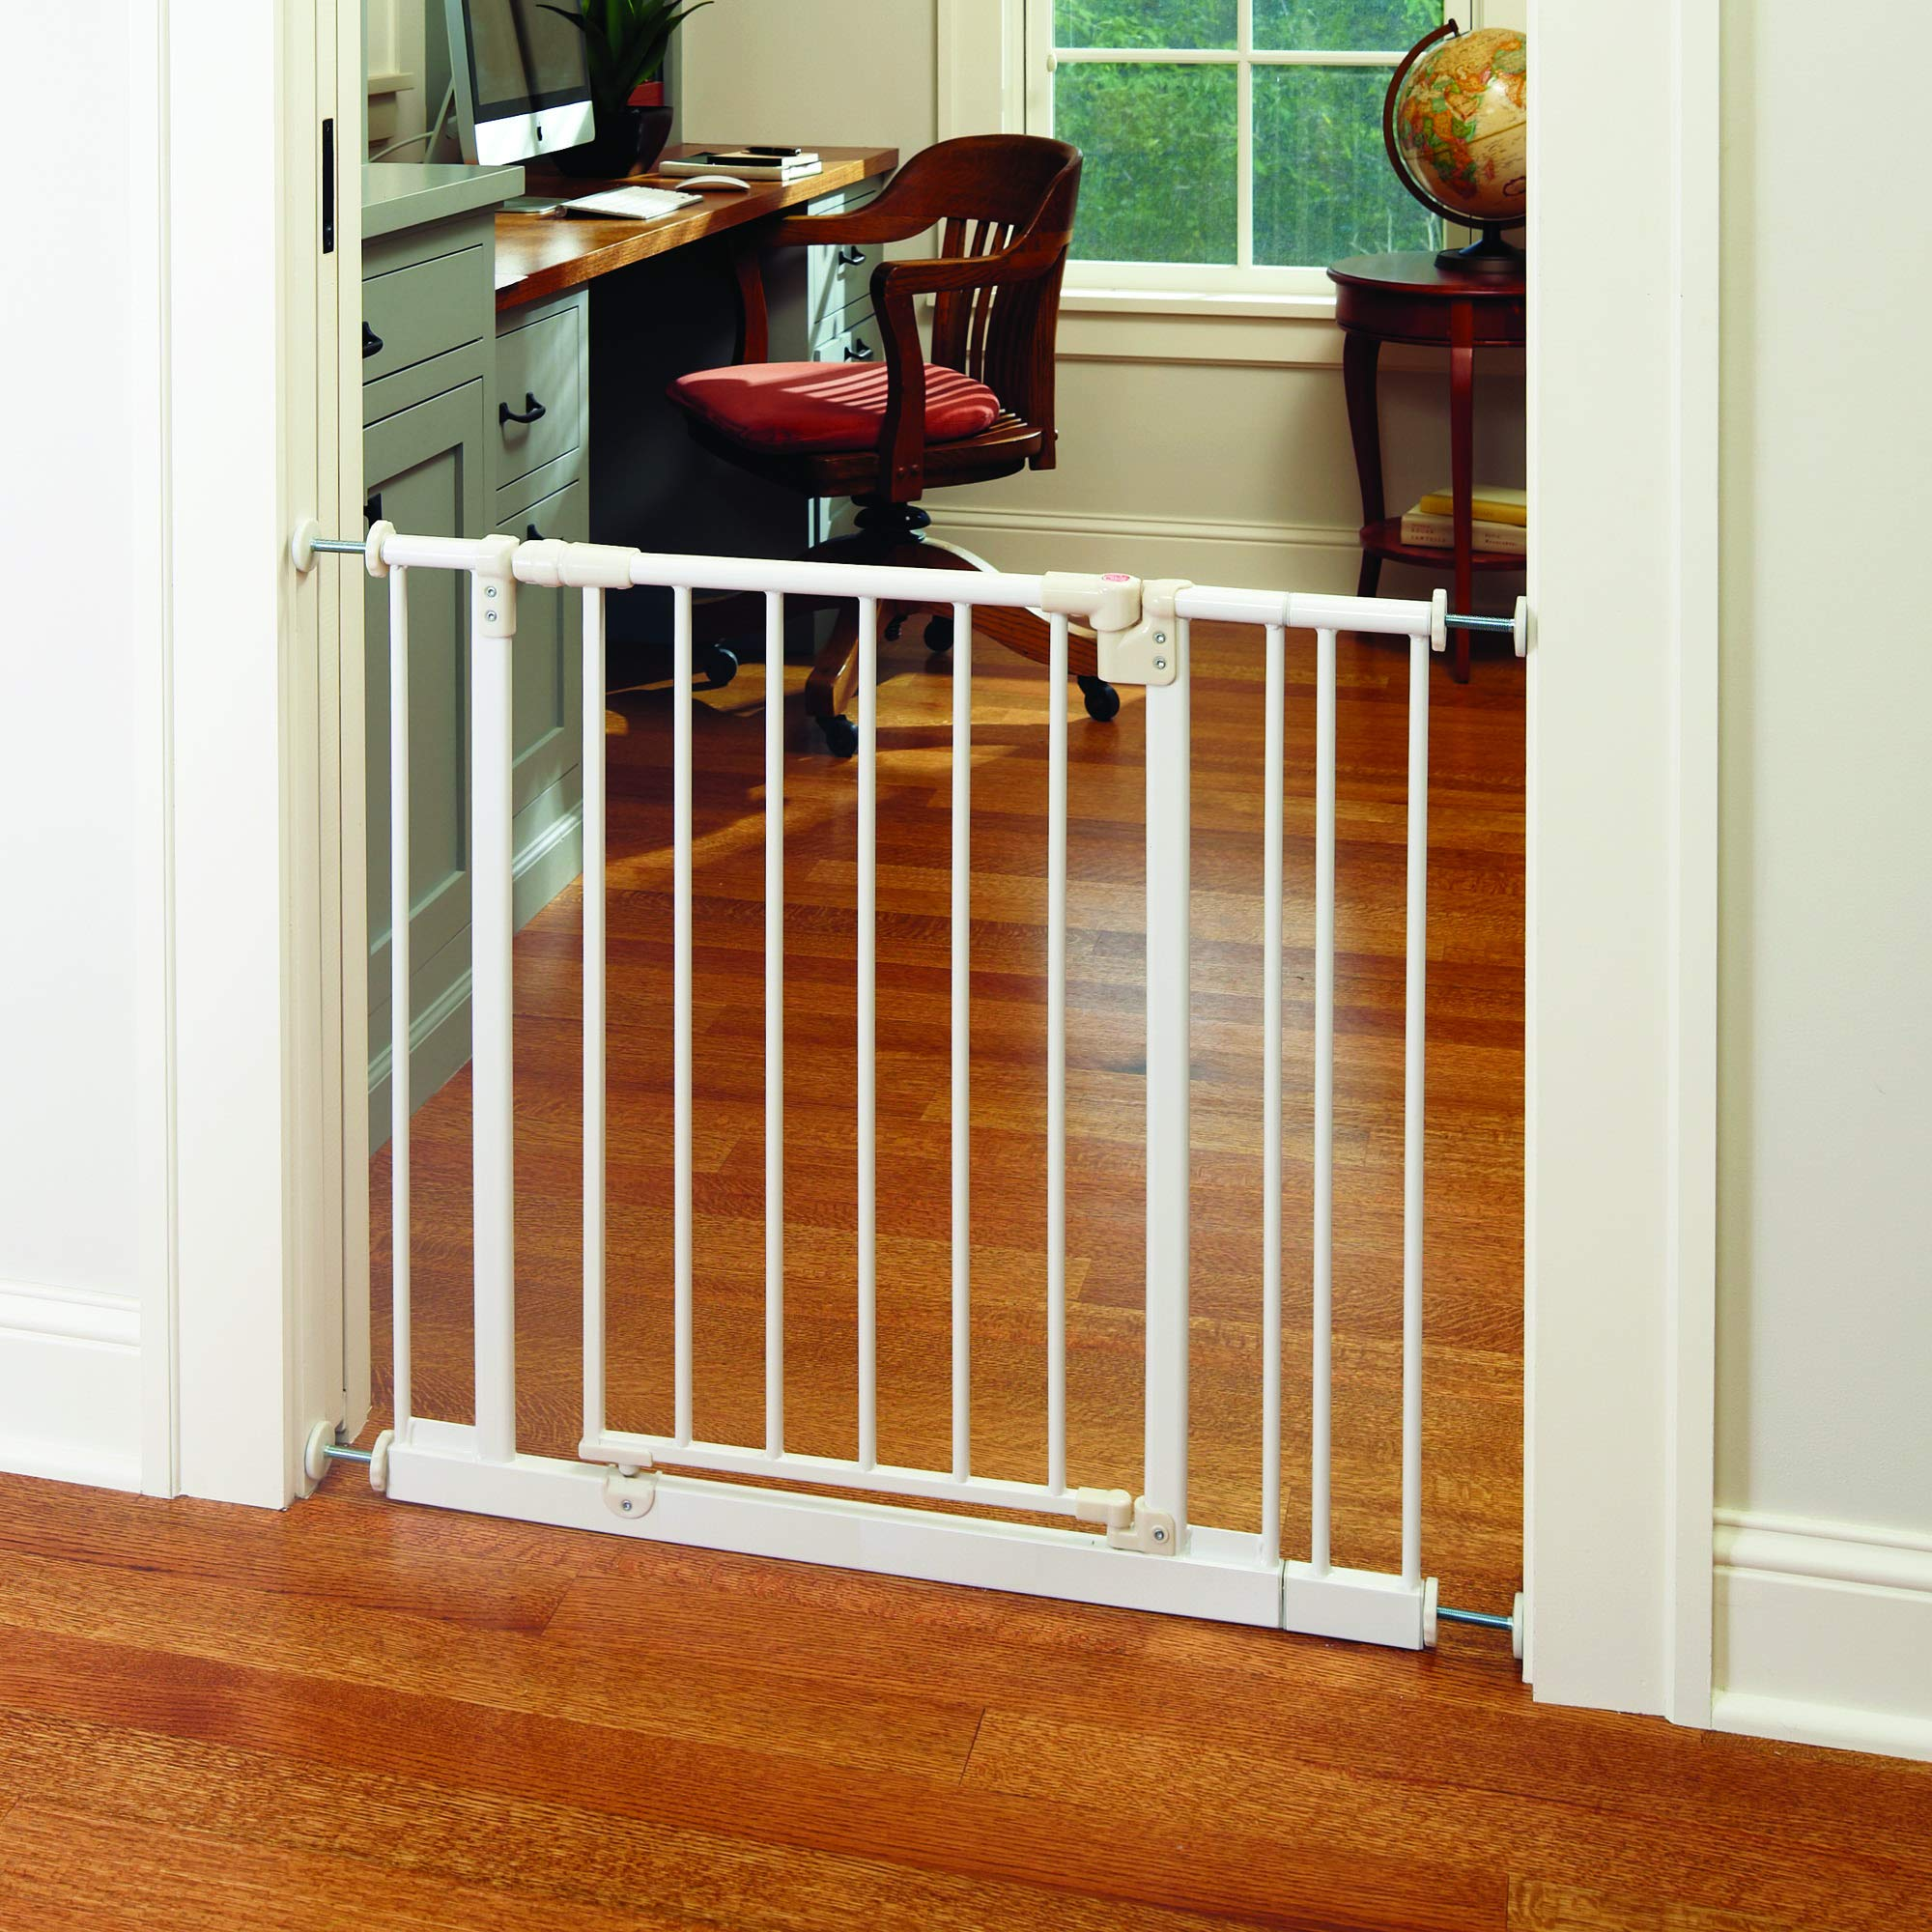 evenflo top of stair plus gate instructions